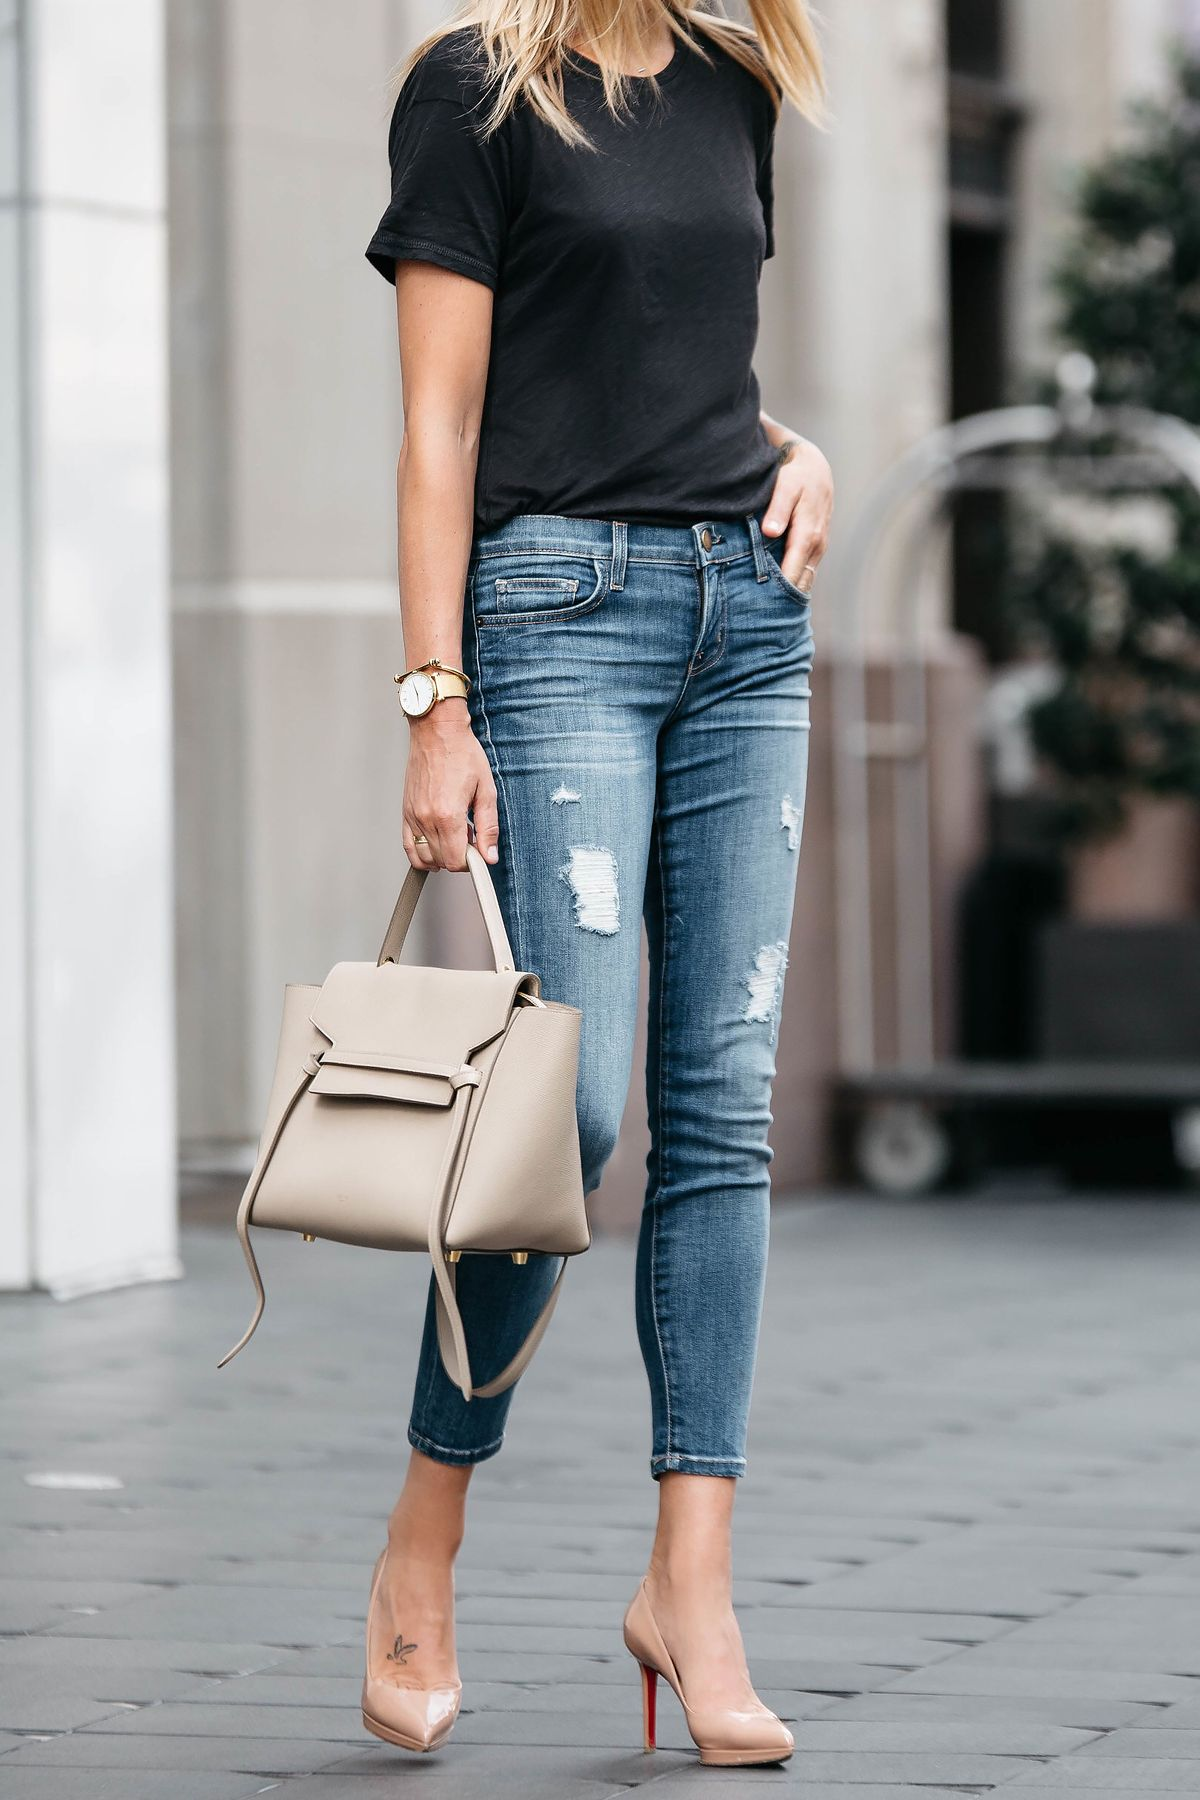 tumblr online outlet countdown package Céline Denim Platform Pumps free shipping from china release dates sale online YoY8b6pL